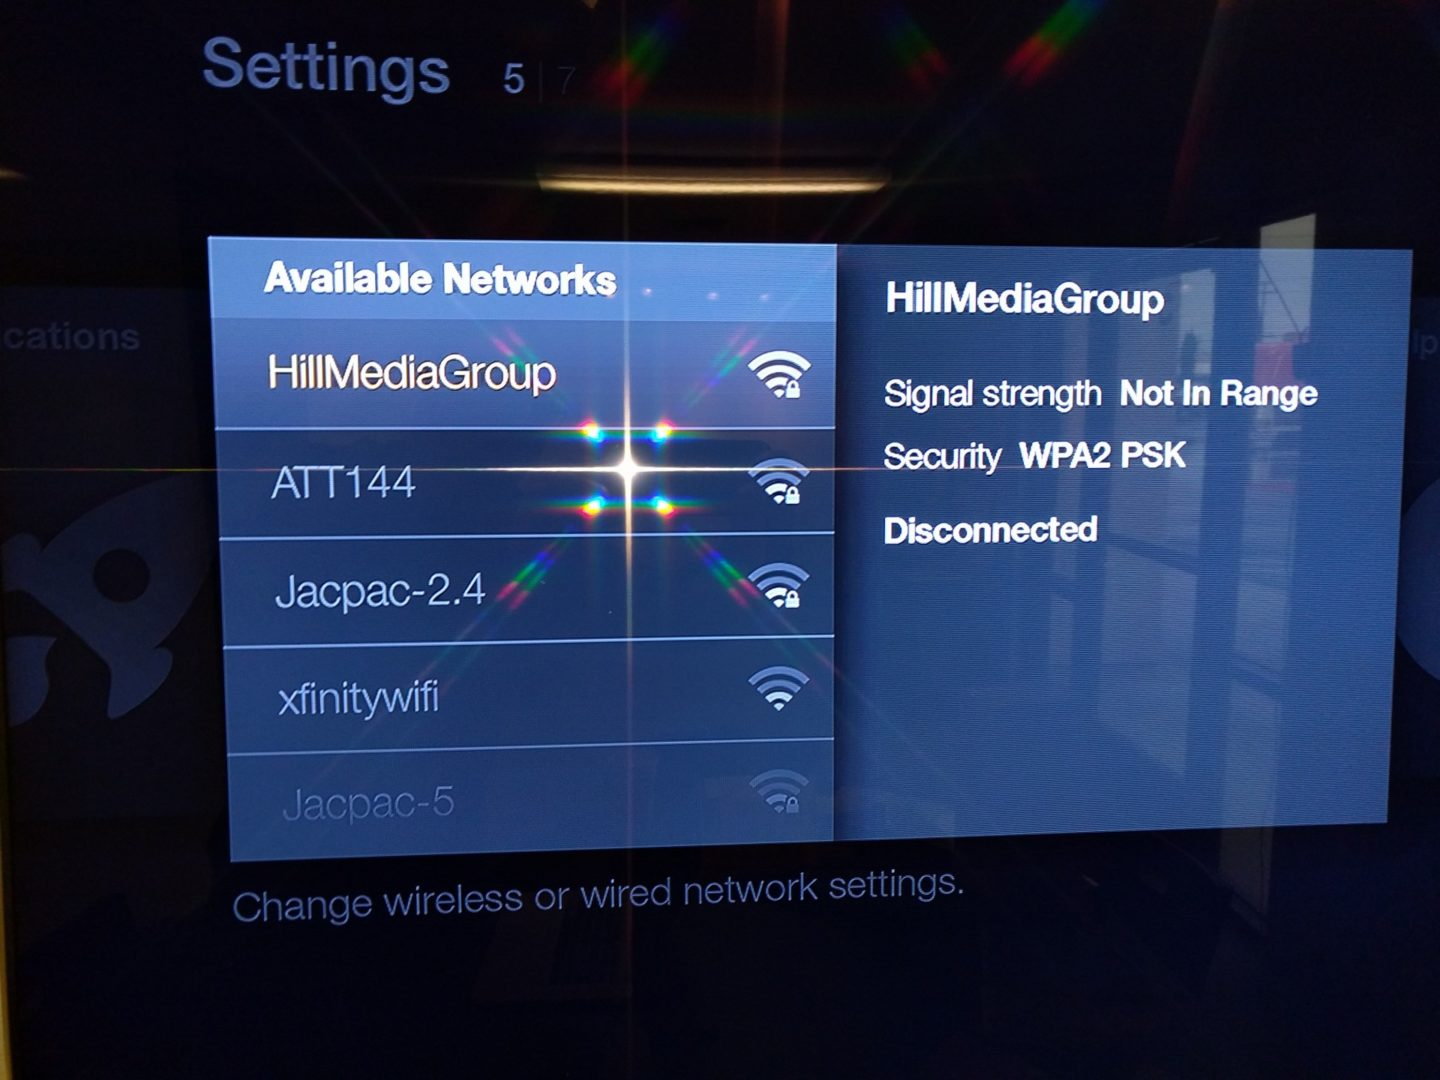 Amazon Fire TV/Stick Won't Connect to Wifi - Not In Range